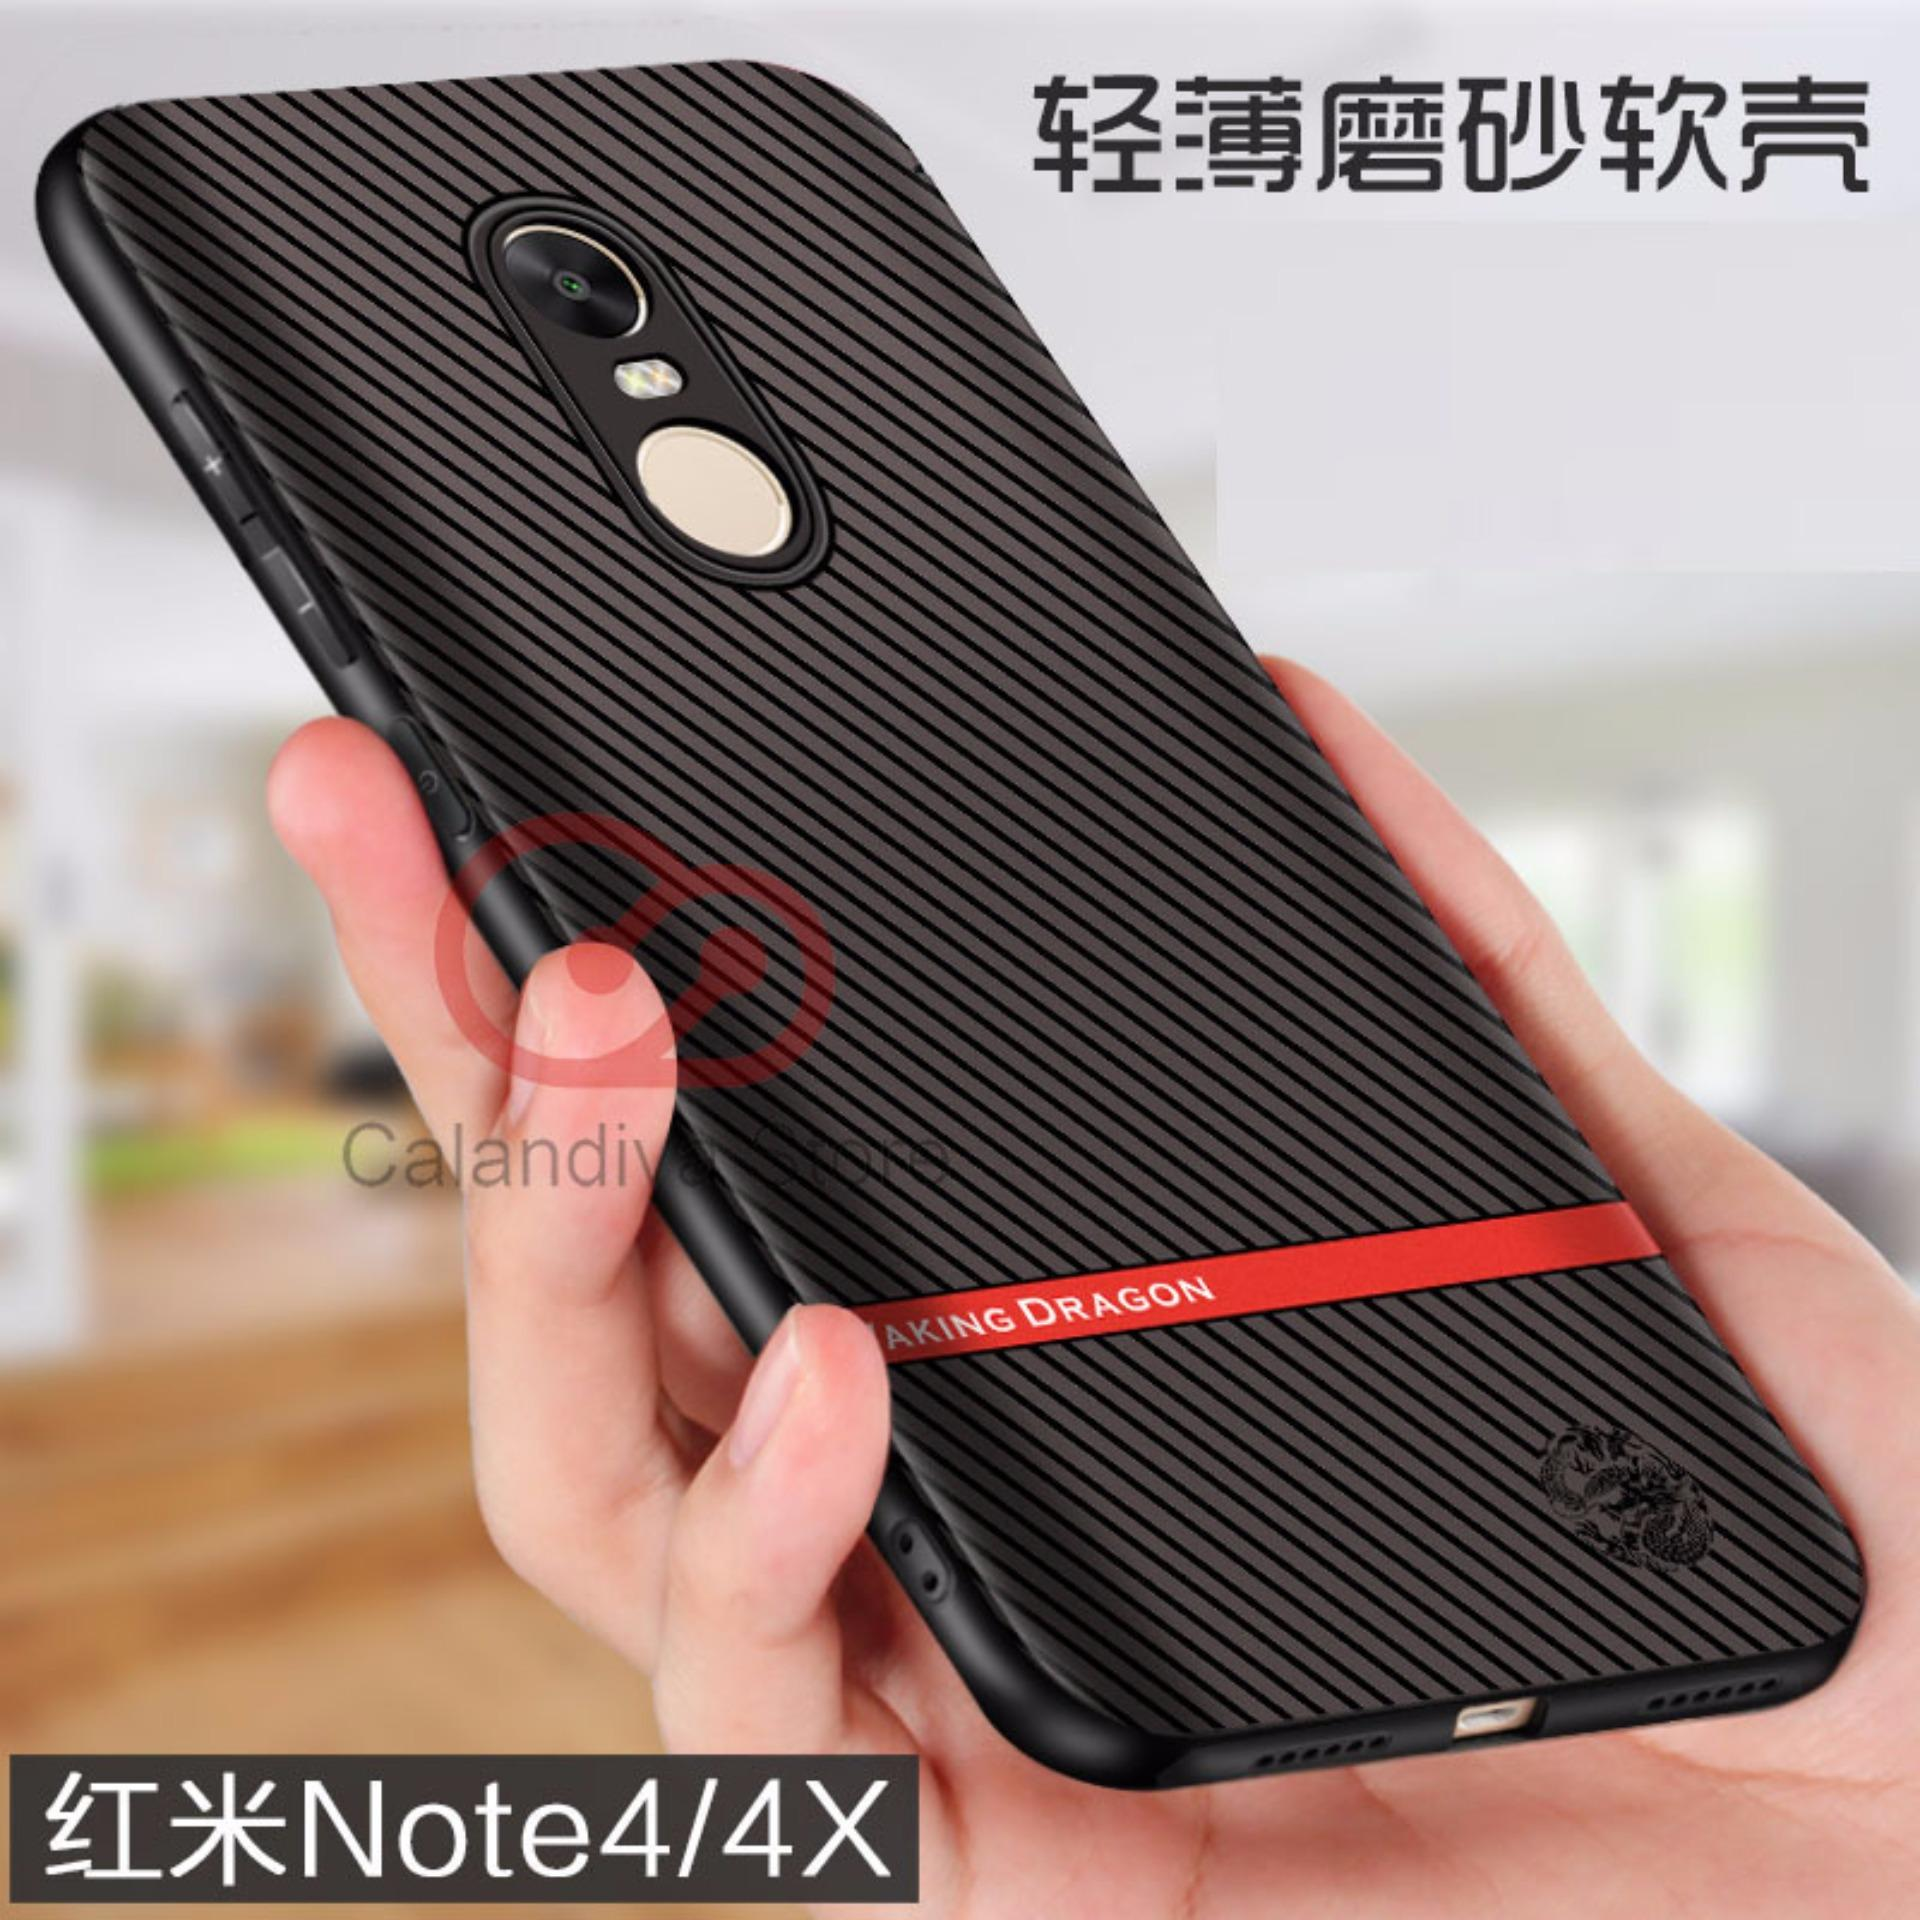 Calandiva Gentleman Series Shockproof Hybrid Case for Xiaomi Redmi Note 4 Mediatek / Redmi Note 4x